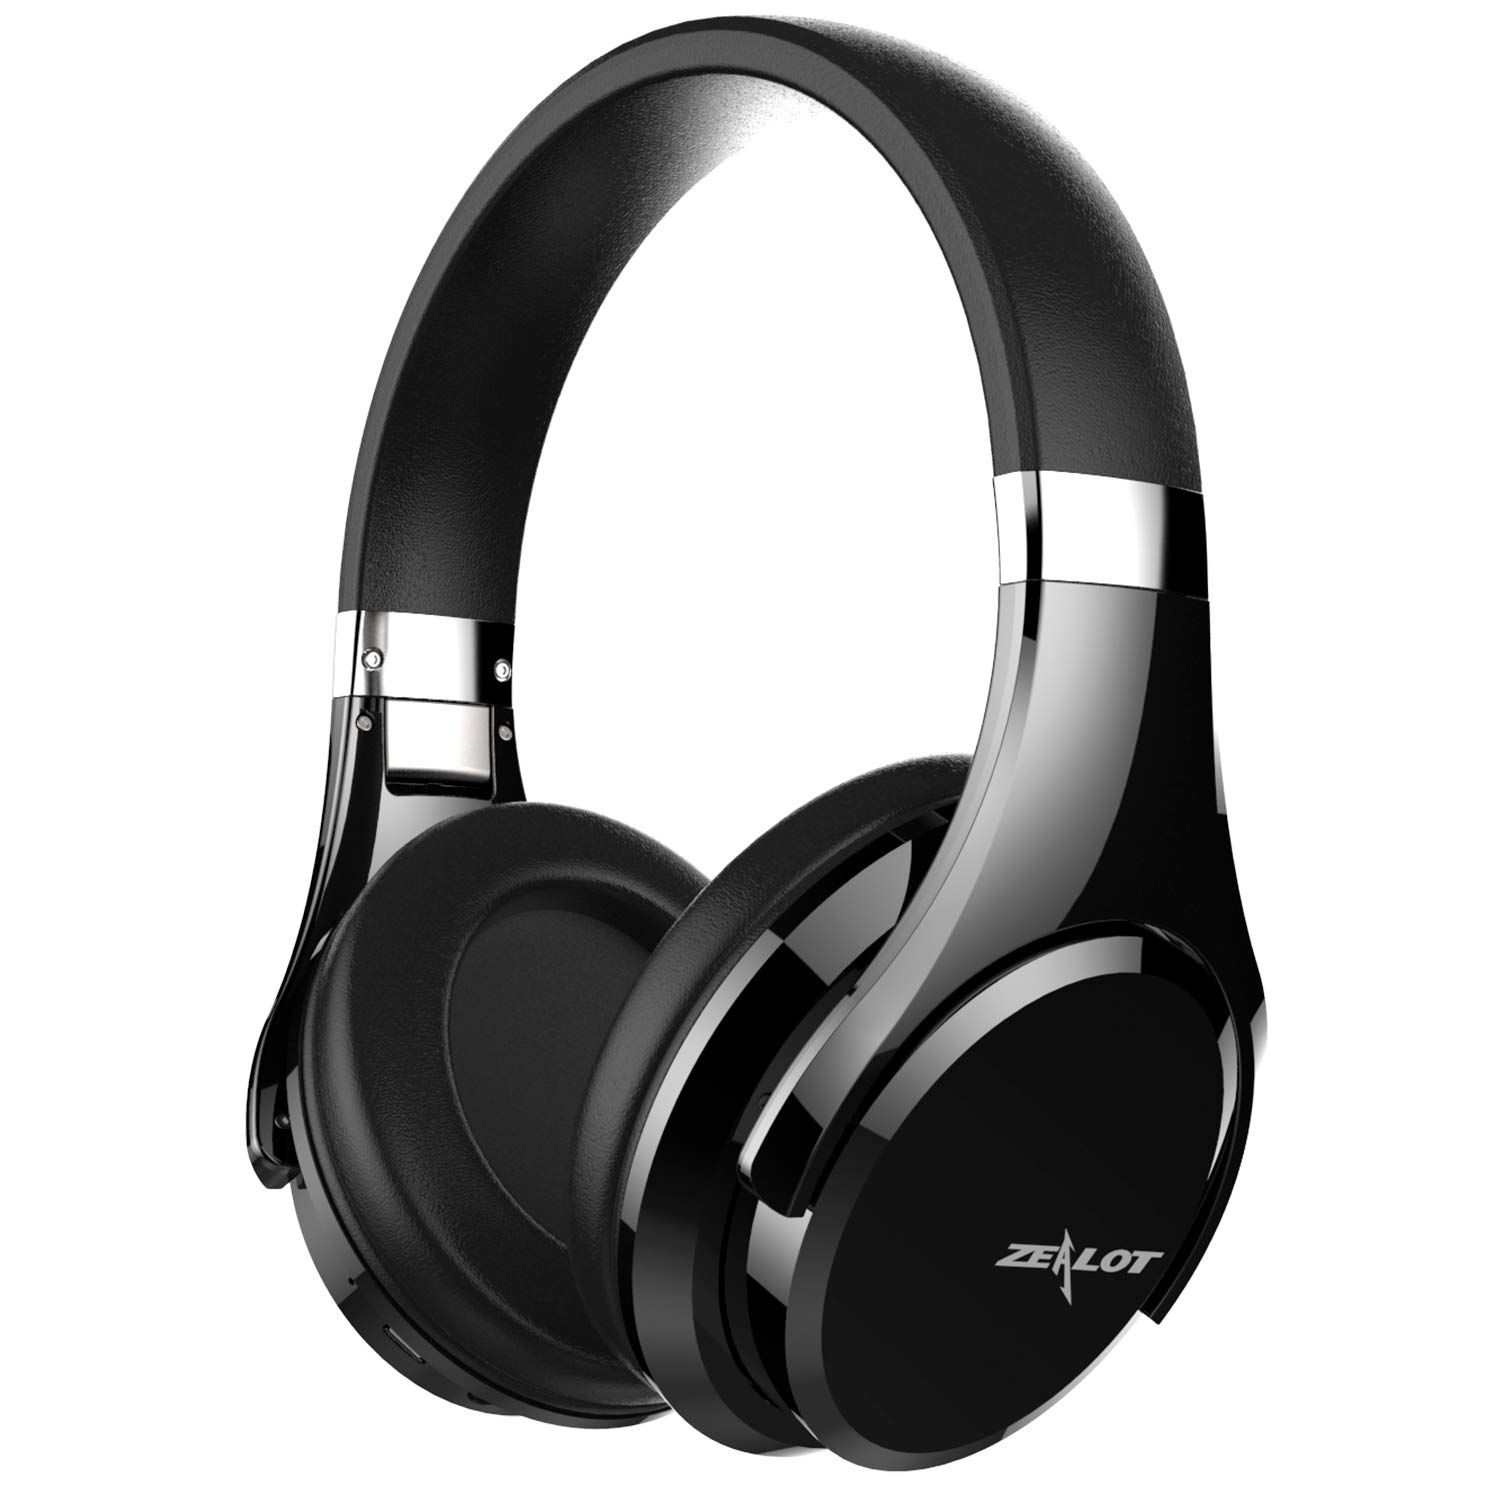 4a0c65f36d3 ZEALOT B21 Gestures Control Bluetooth Headphones Over Ear, Hi-Fi Stereo  Foldable Wireless Headset w/Mic Comfortable Earpad Earphone for  PC/Cellphone/Tablet/ ...